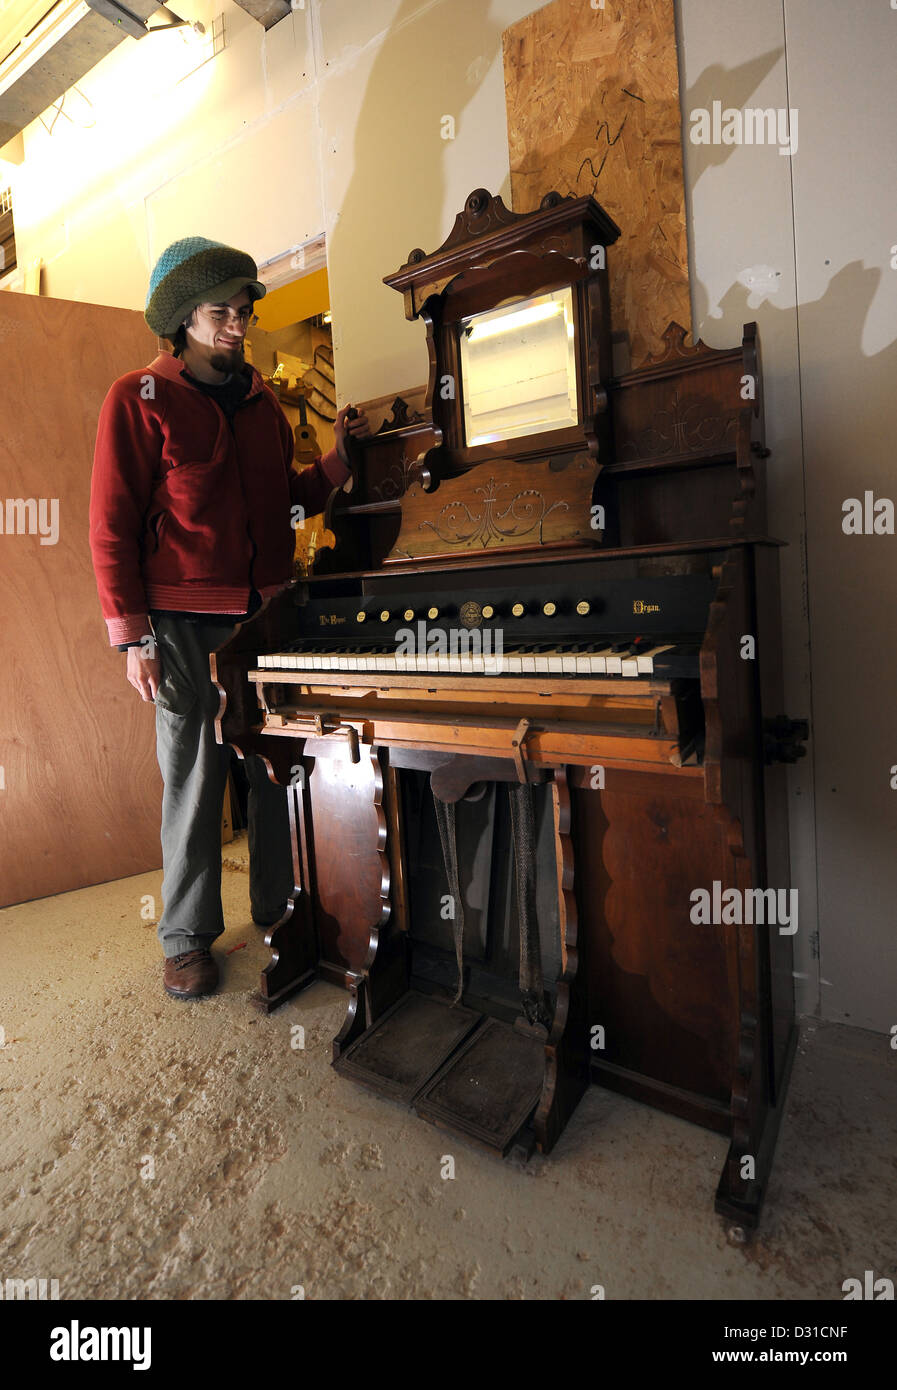 An old Victorian pump organ made by William Sames Ltd - Stock Image